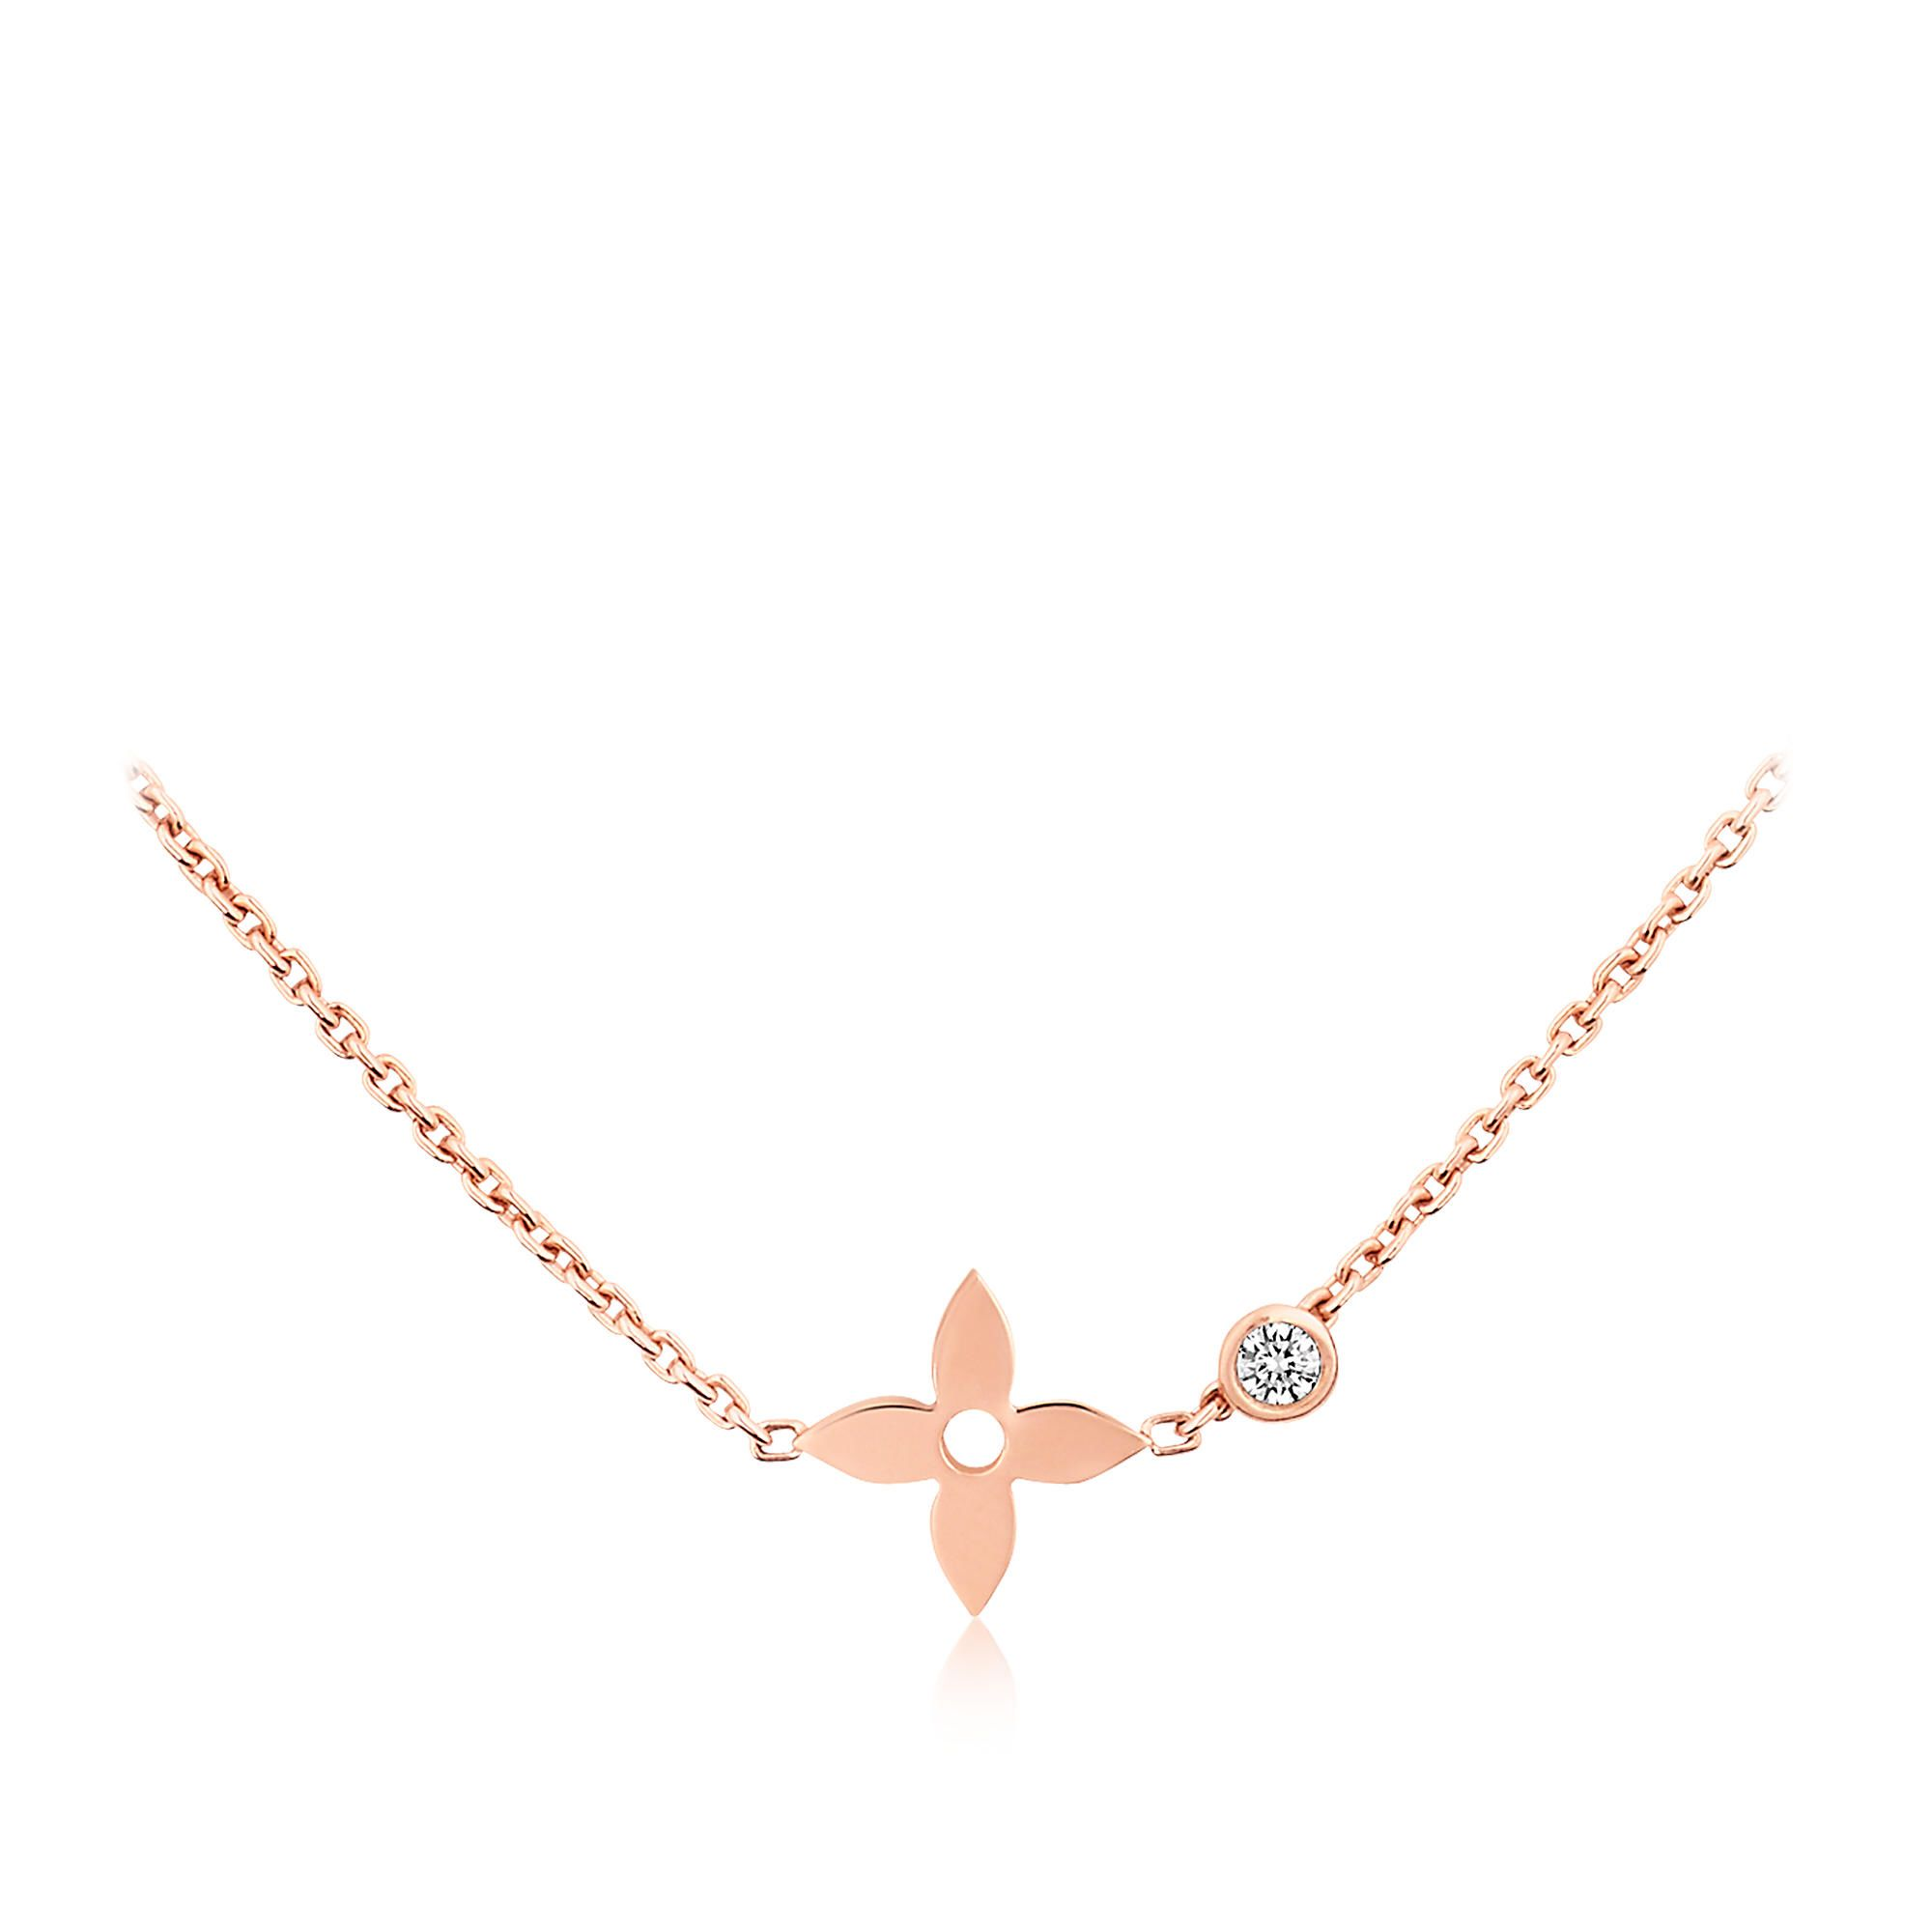 Image from http://us.louisvuitton.com/images/is/image/lv/1/PP_VP_L/louis-vuitton-monogram-idylle-pendant-pink-gold-and-diamond-fine-jewelry--Q93281_PM2_Front%20view.jpg.